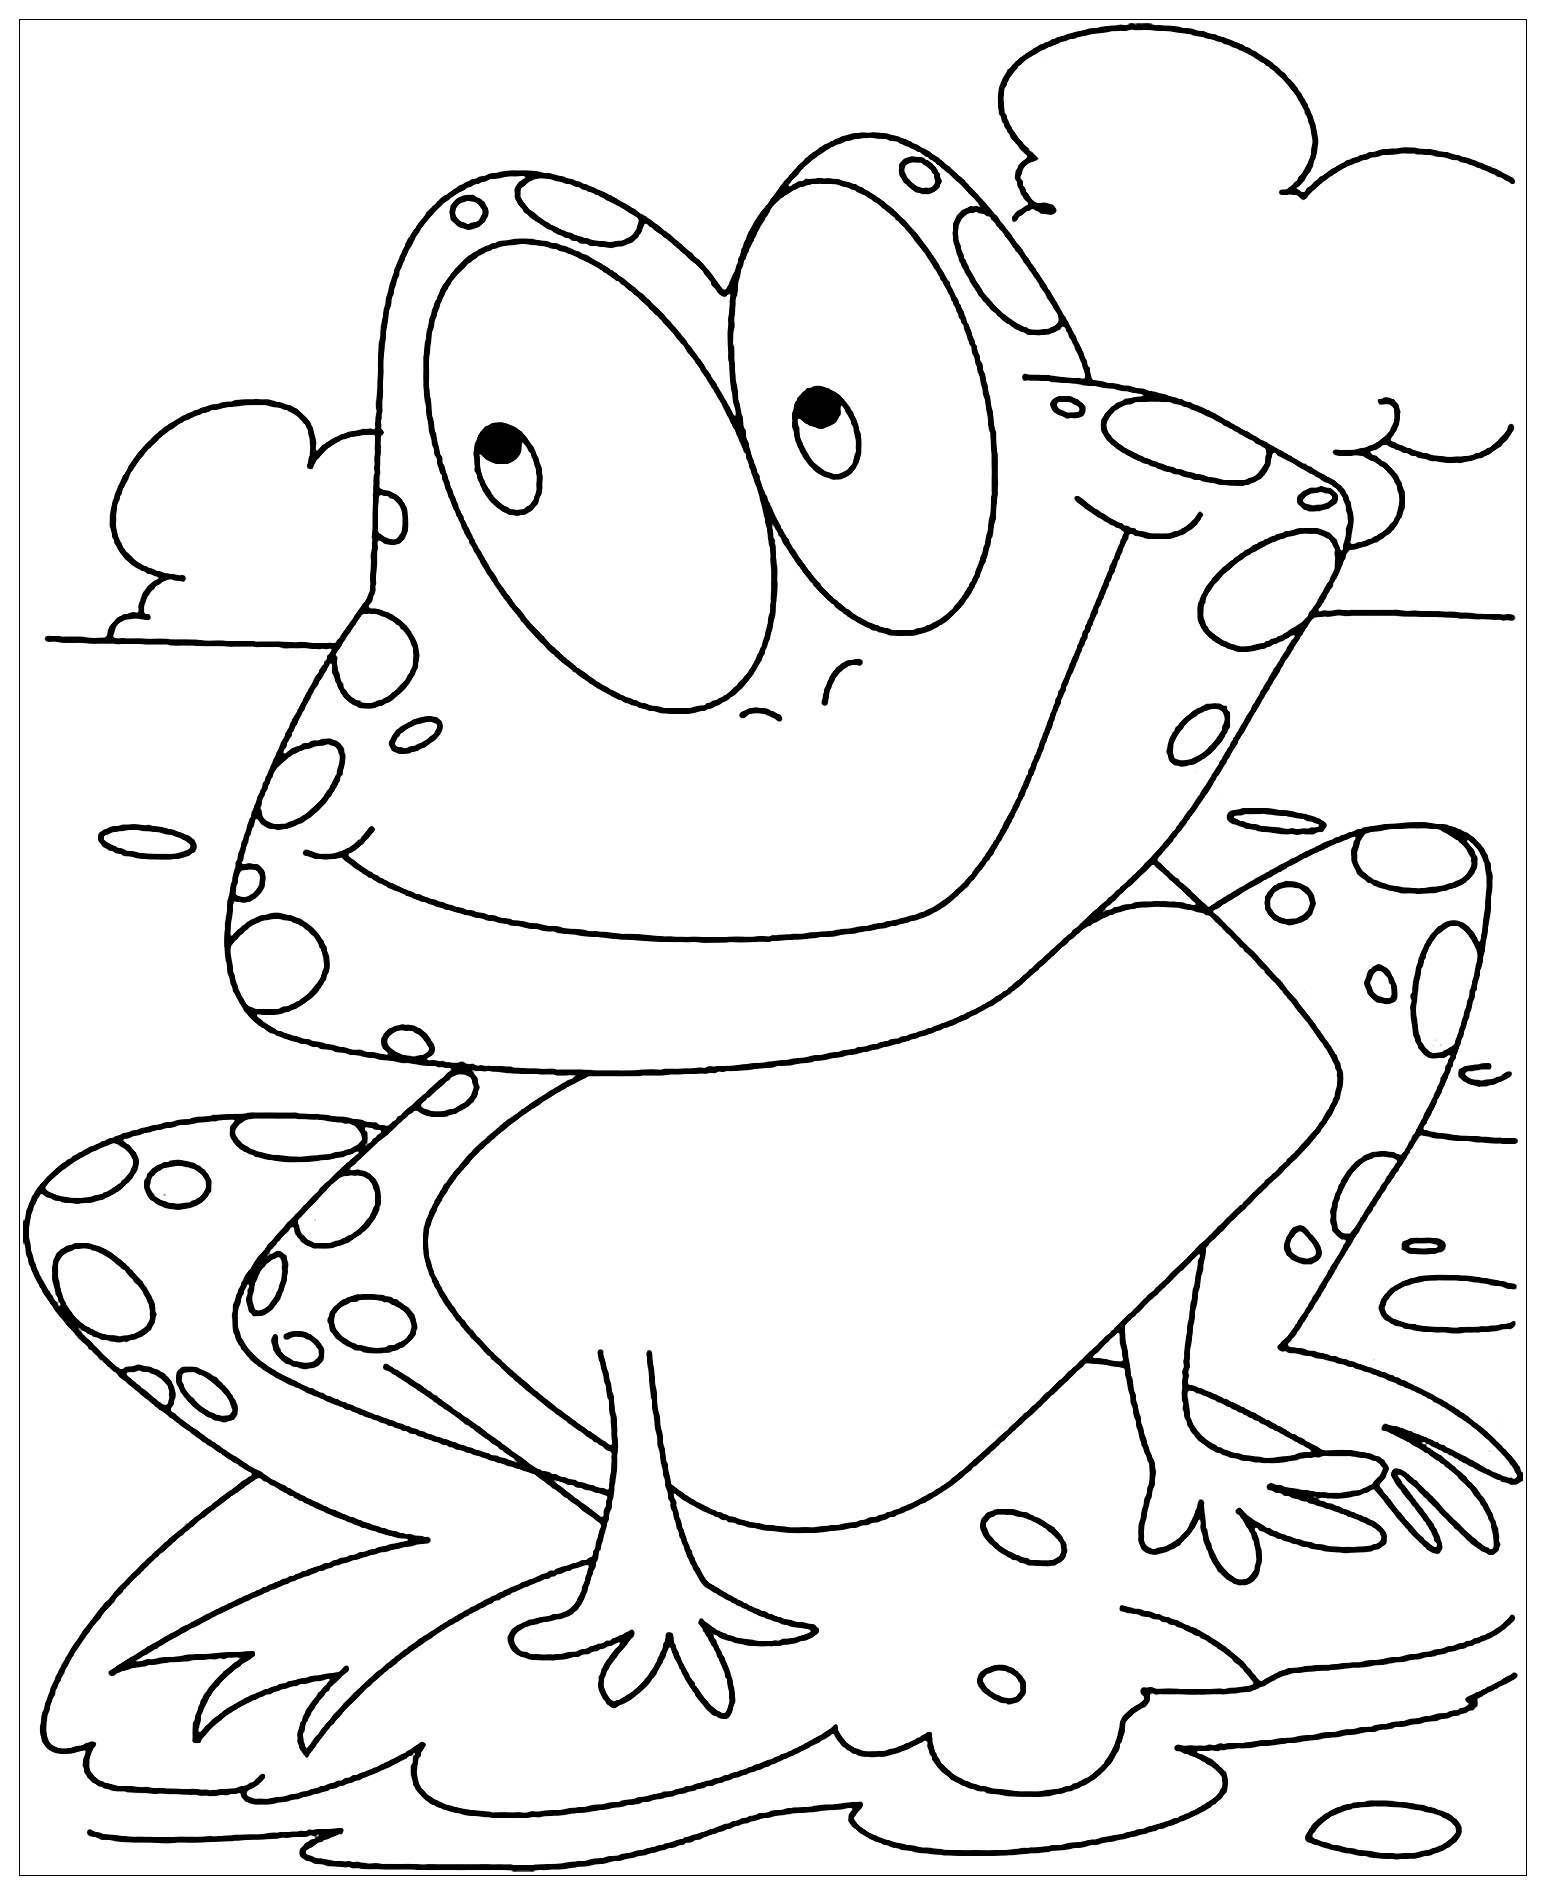 frogs coloring pages print download frog coloring pages theme for kids coloring frogs pages